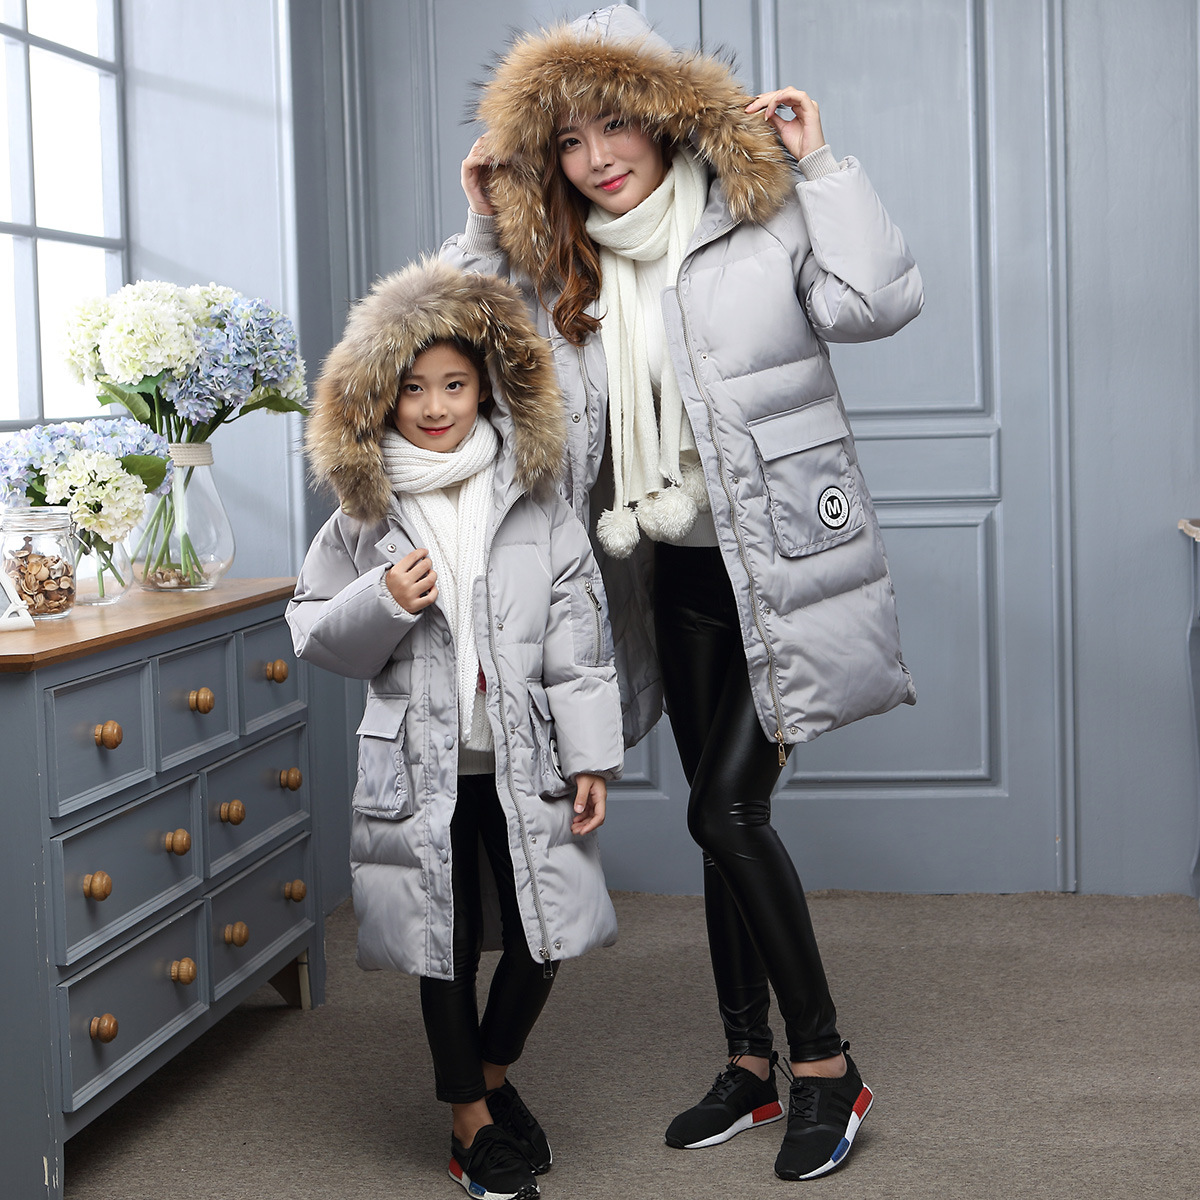 2016 New Baby Girls Boys Winter Coats Jacket Children Down Outerwear Warm Thick Outdoor Kids Fur Collar Snow Proof Coat Parkas children winter warm jacket baby down coat outerwear boys girls 90